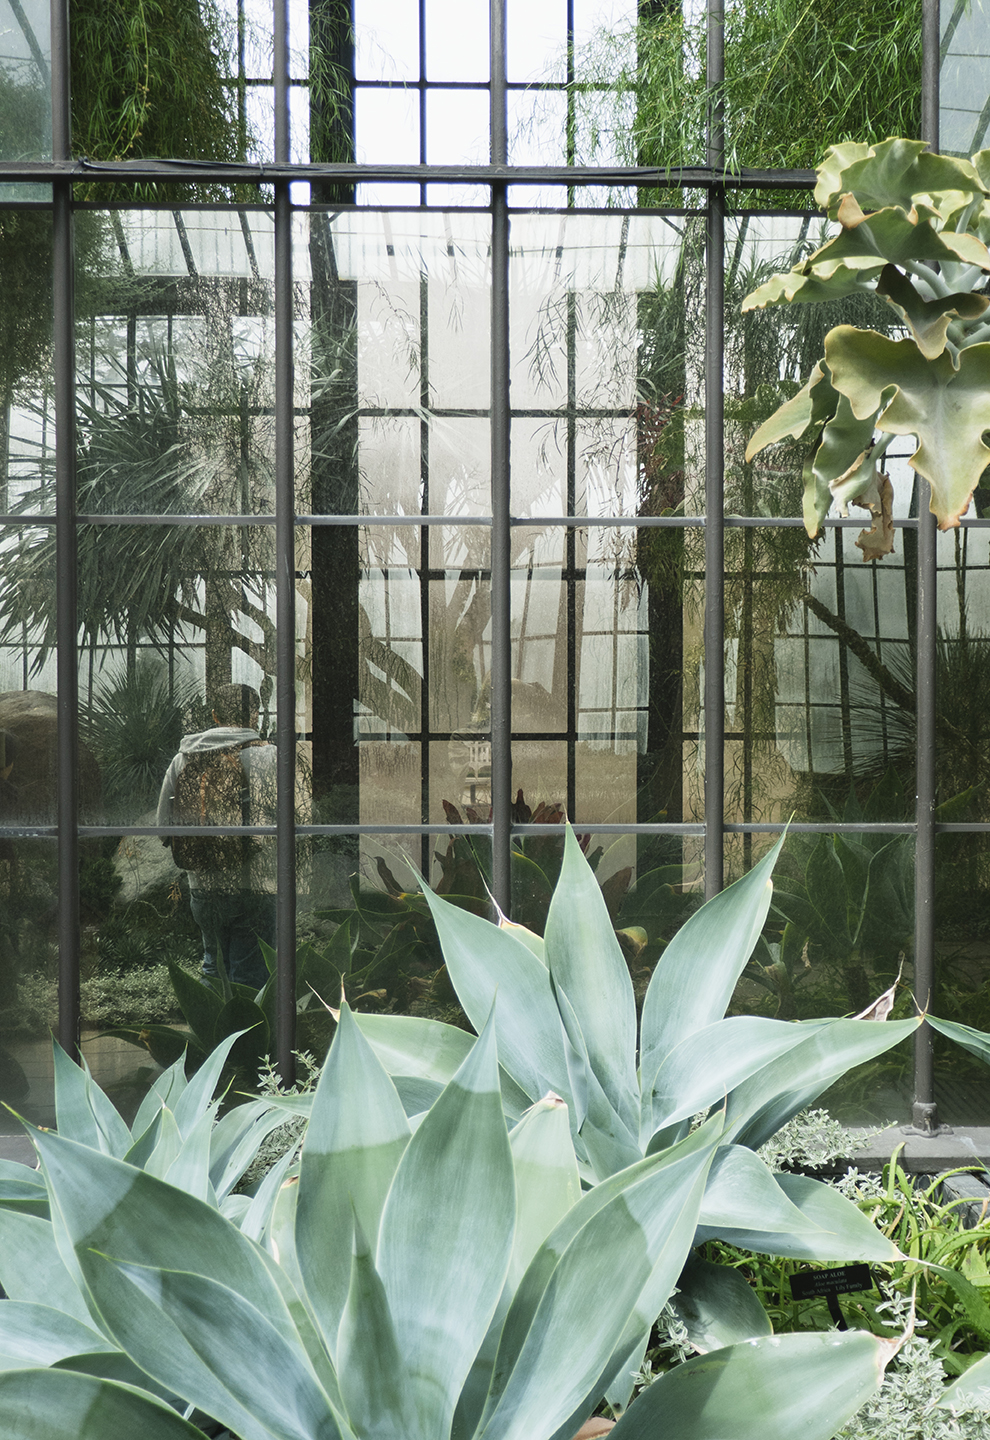 Longwood Gardens Conservatory on the Print Club Ltd. Journal